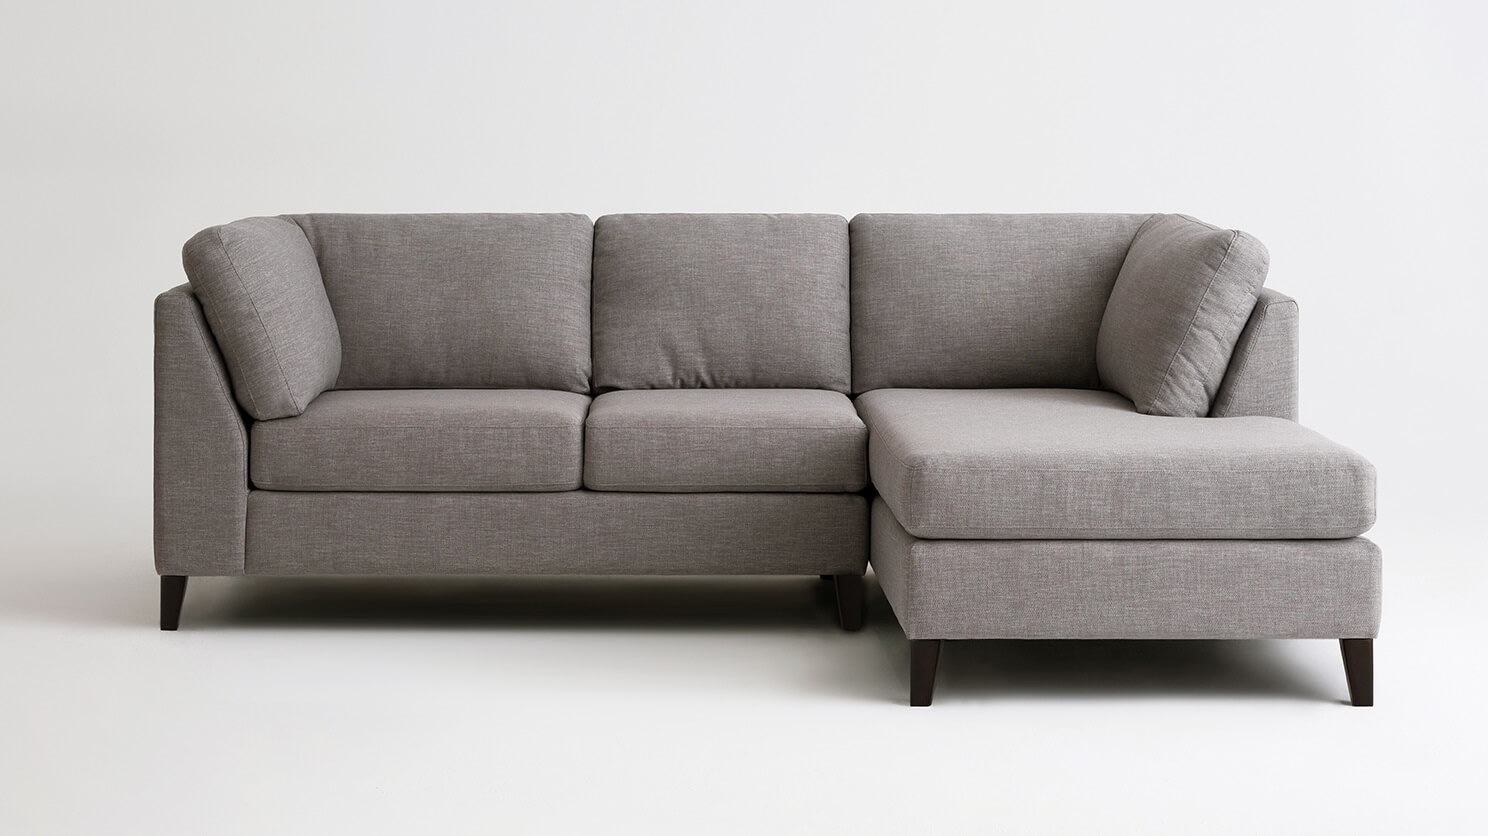 Prime Salema 2 Piece Sectional Sofa With Chaise Fabric Andrewgaddart Wooden Chair Designs For Living Room Andrewgaddartcom